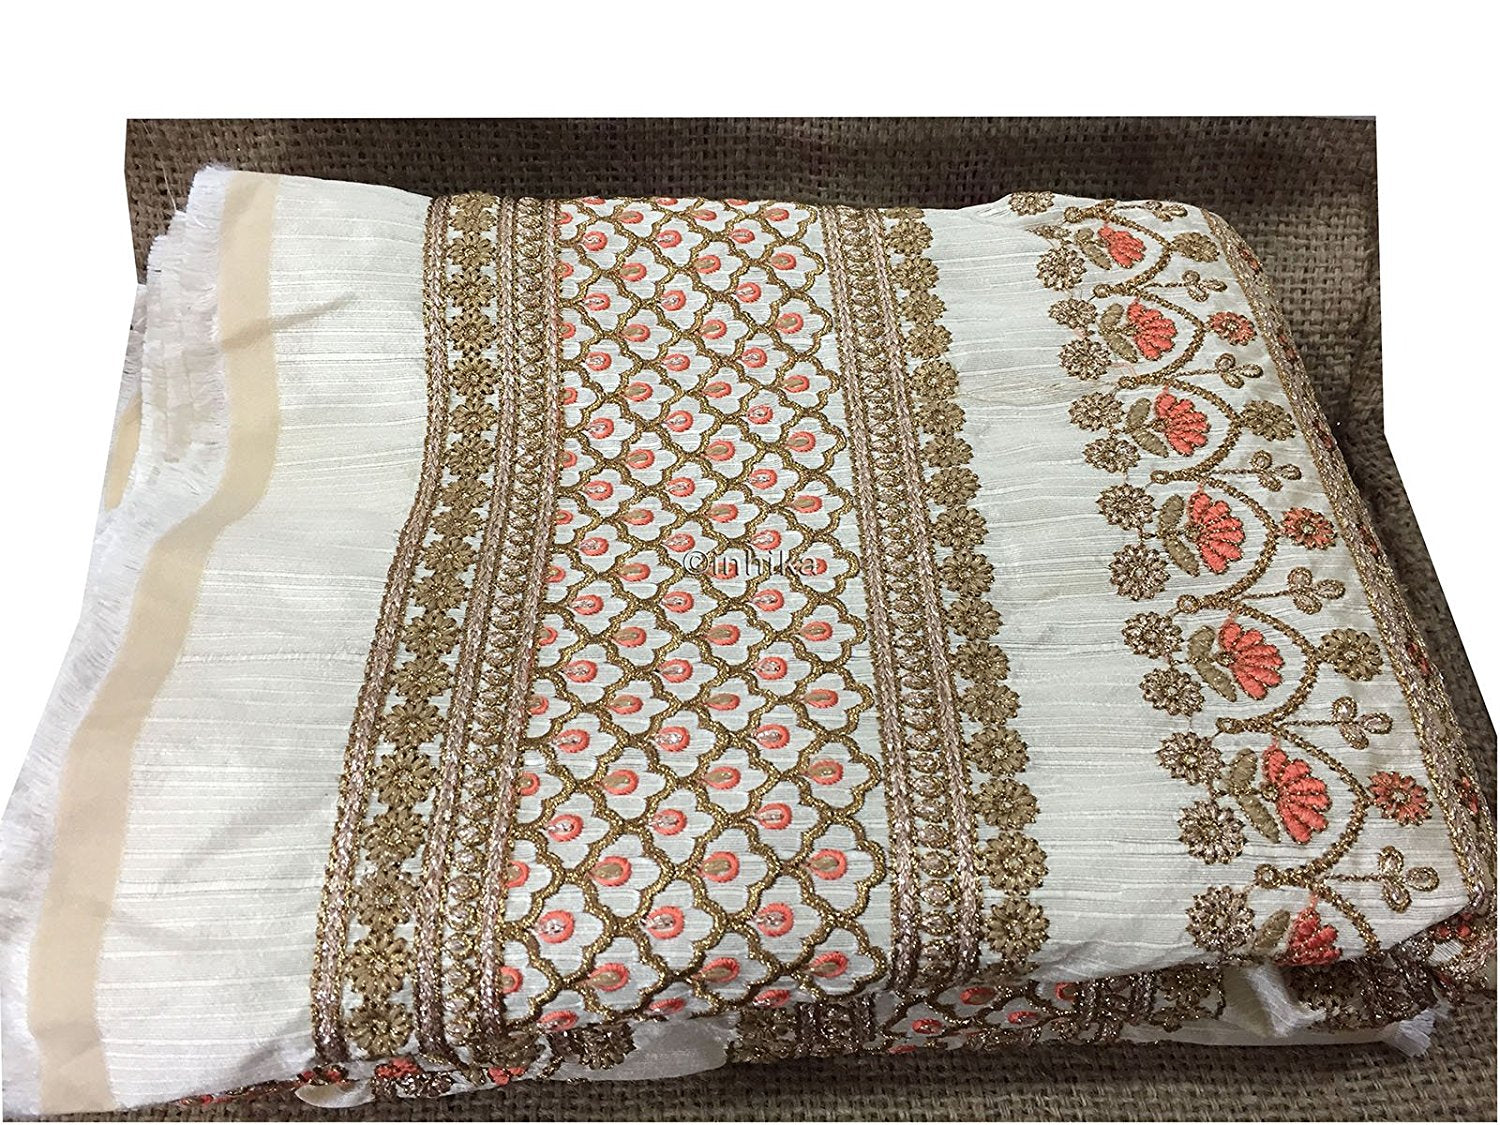 blouse material online india fabric online india Embroidery Dupion Cream, Gold, Peach, Copper 43 inches Wide 9201